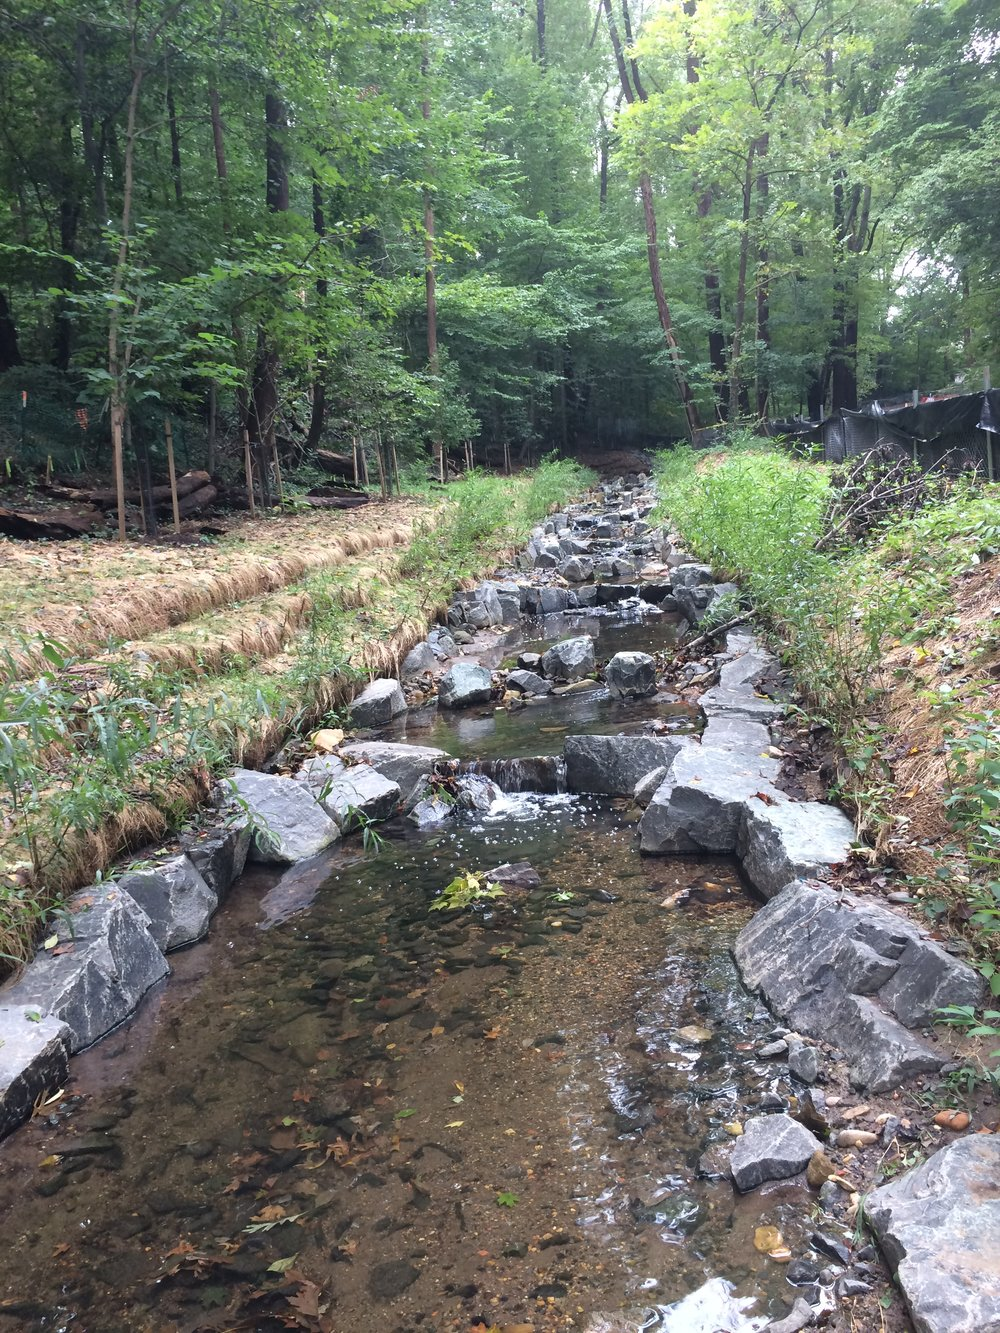 Friday morning view of the step pools in the project's stream restoration segment 1 after experiencing several inches of rainfall in the last few days